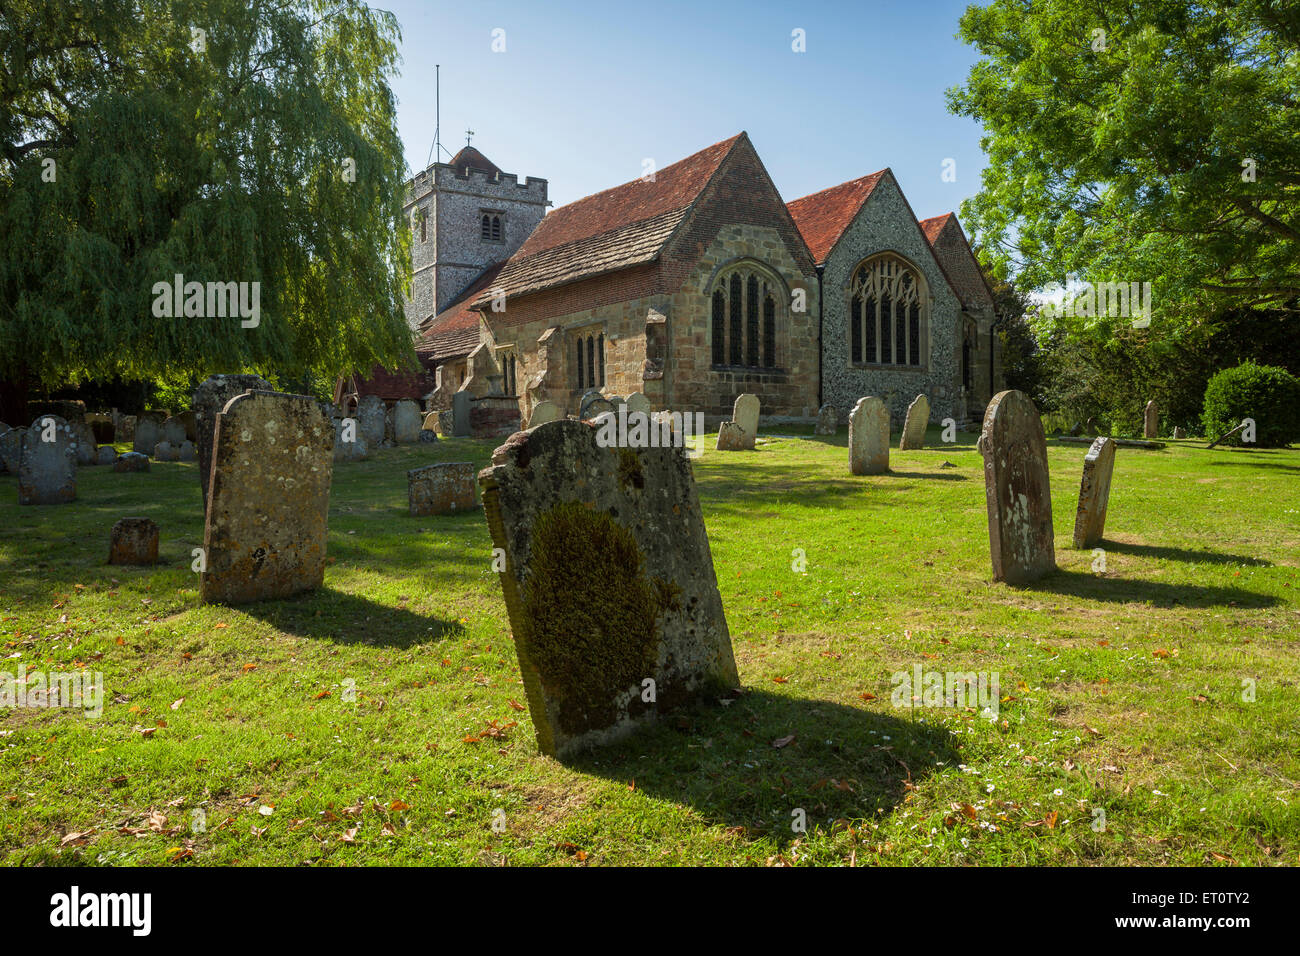 Spring afternoon at St Mary's church in Ringmer, East Sussex, England. Stock Photo